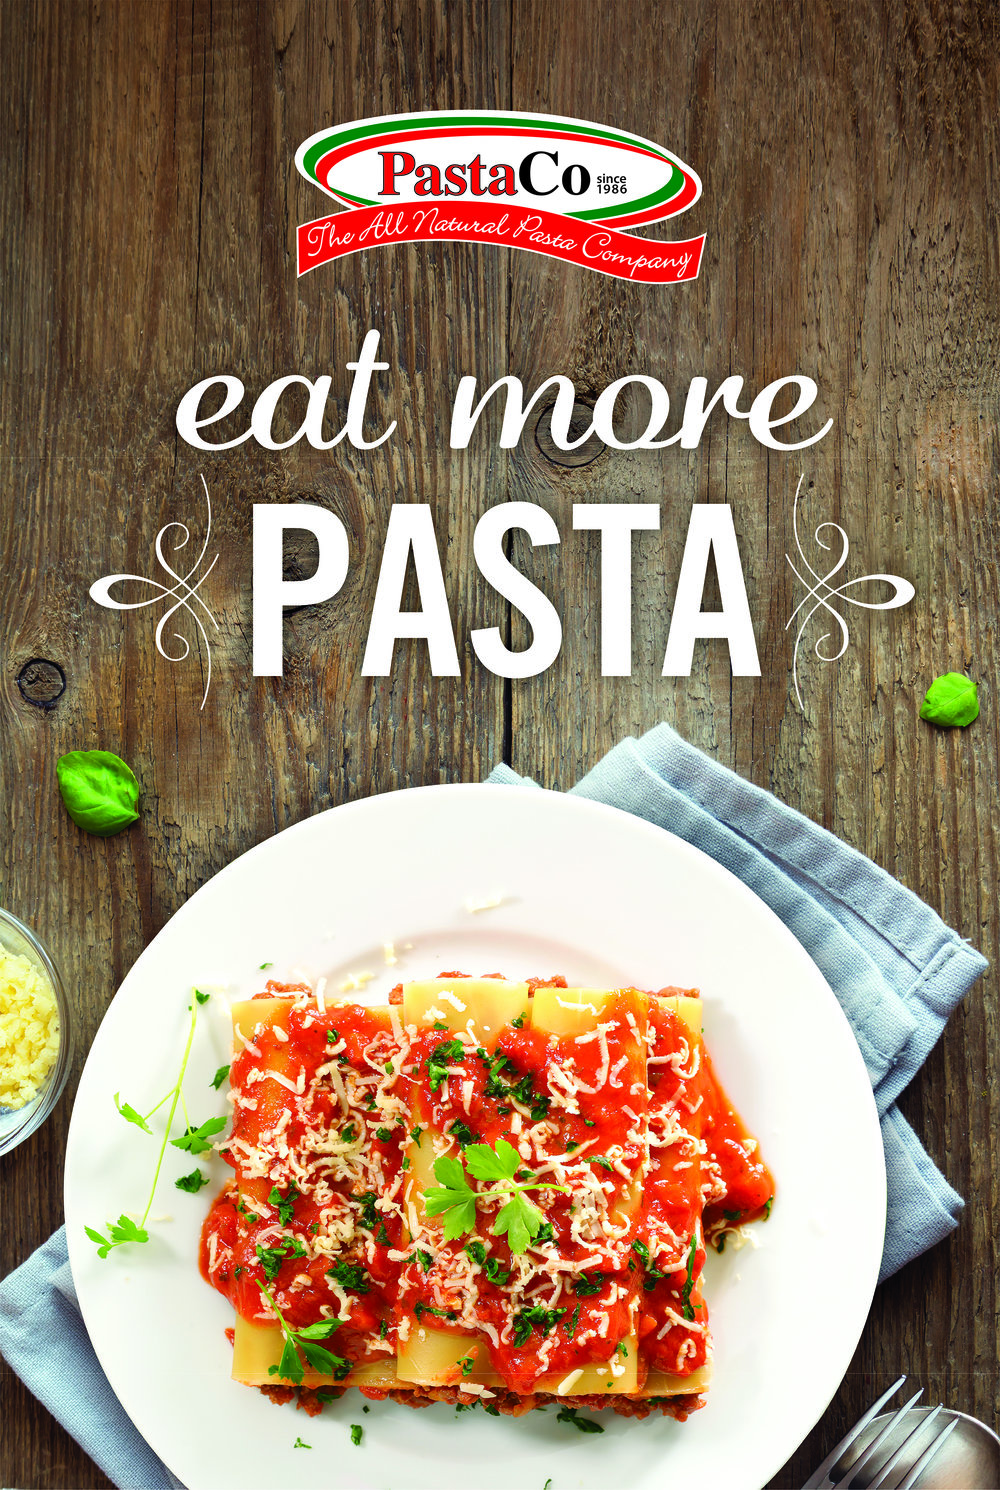 Pasta Co. Tradeshow Poster Design